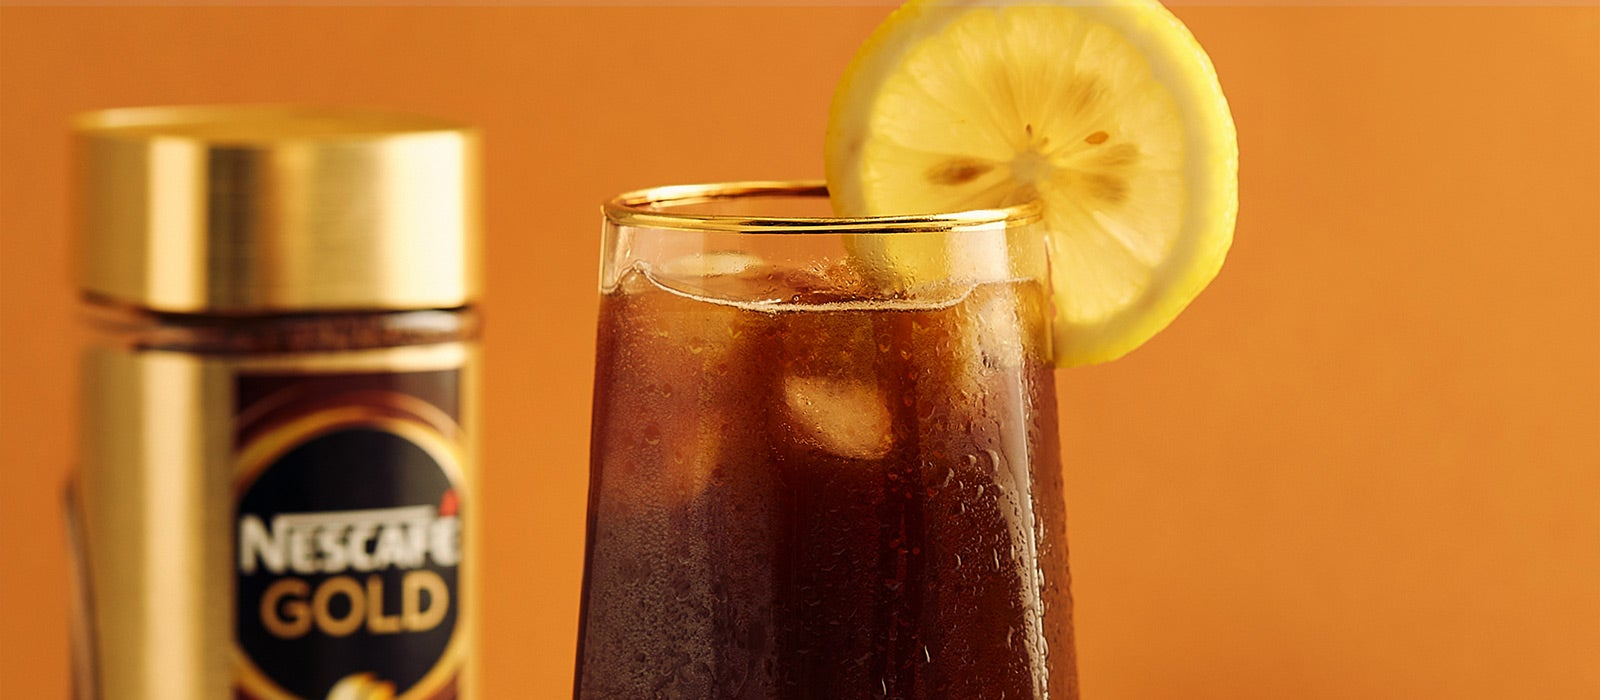 iced-coffee-limonate-page-banner_0.jpg